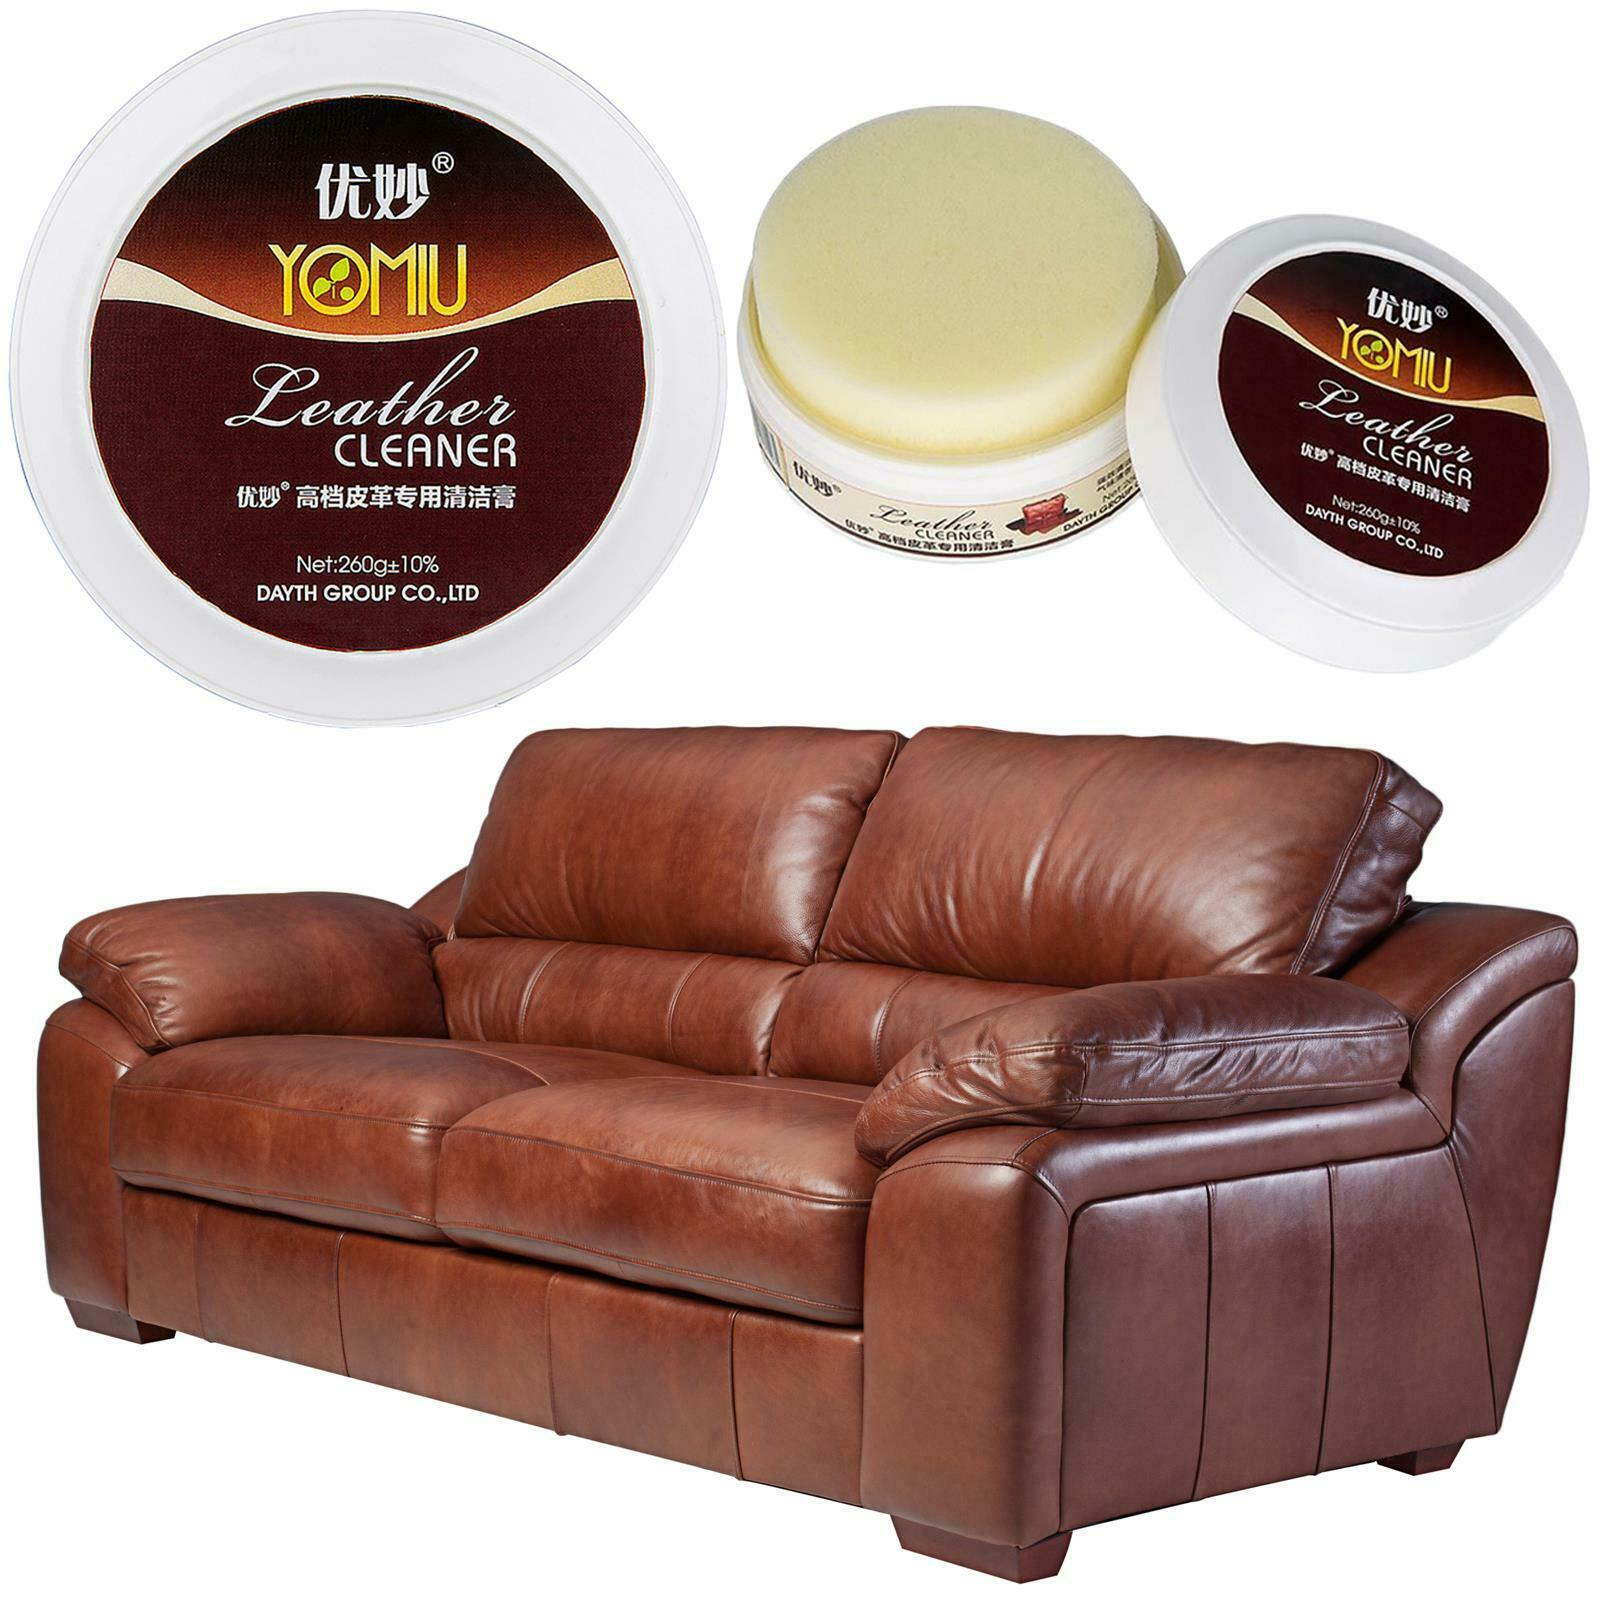 Generise Wax Leather Cleaner, Shoe Care & Tools - Image 1